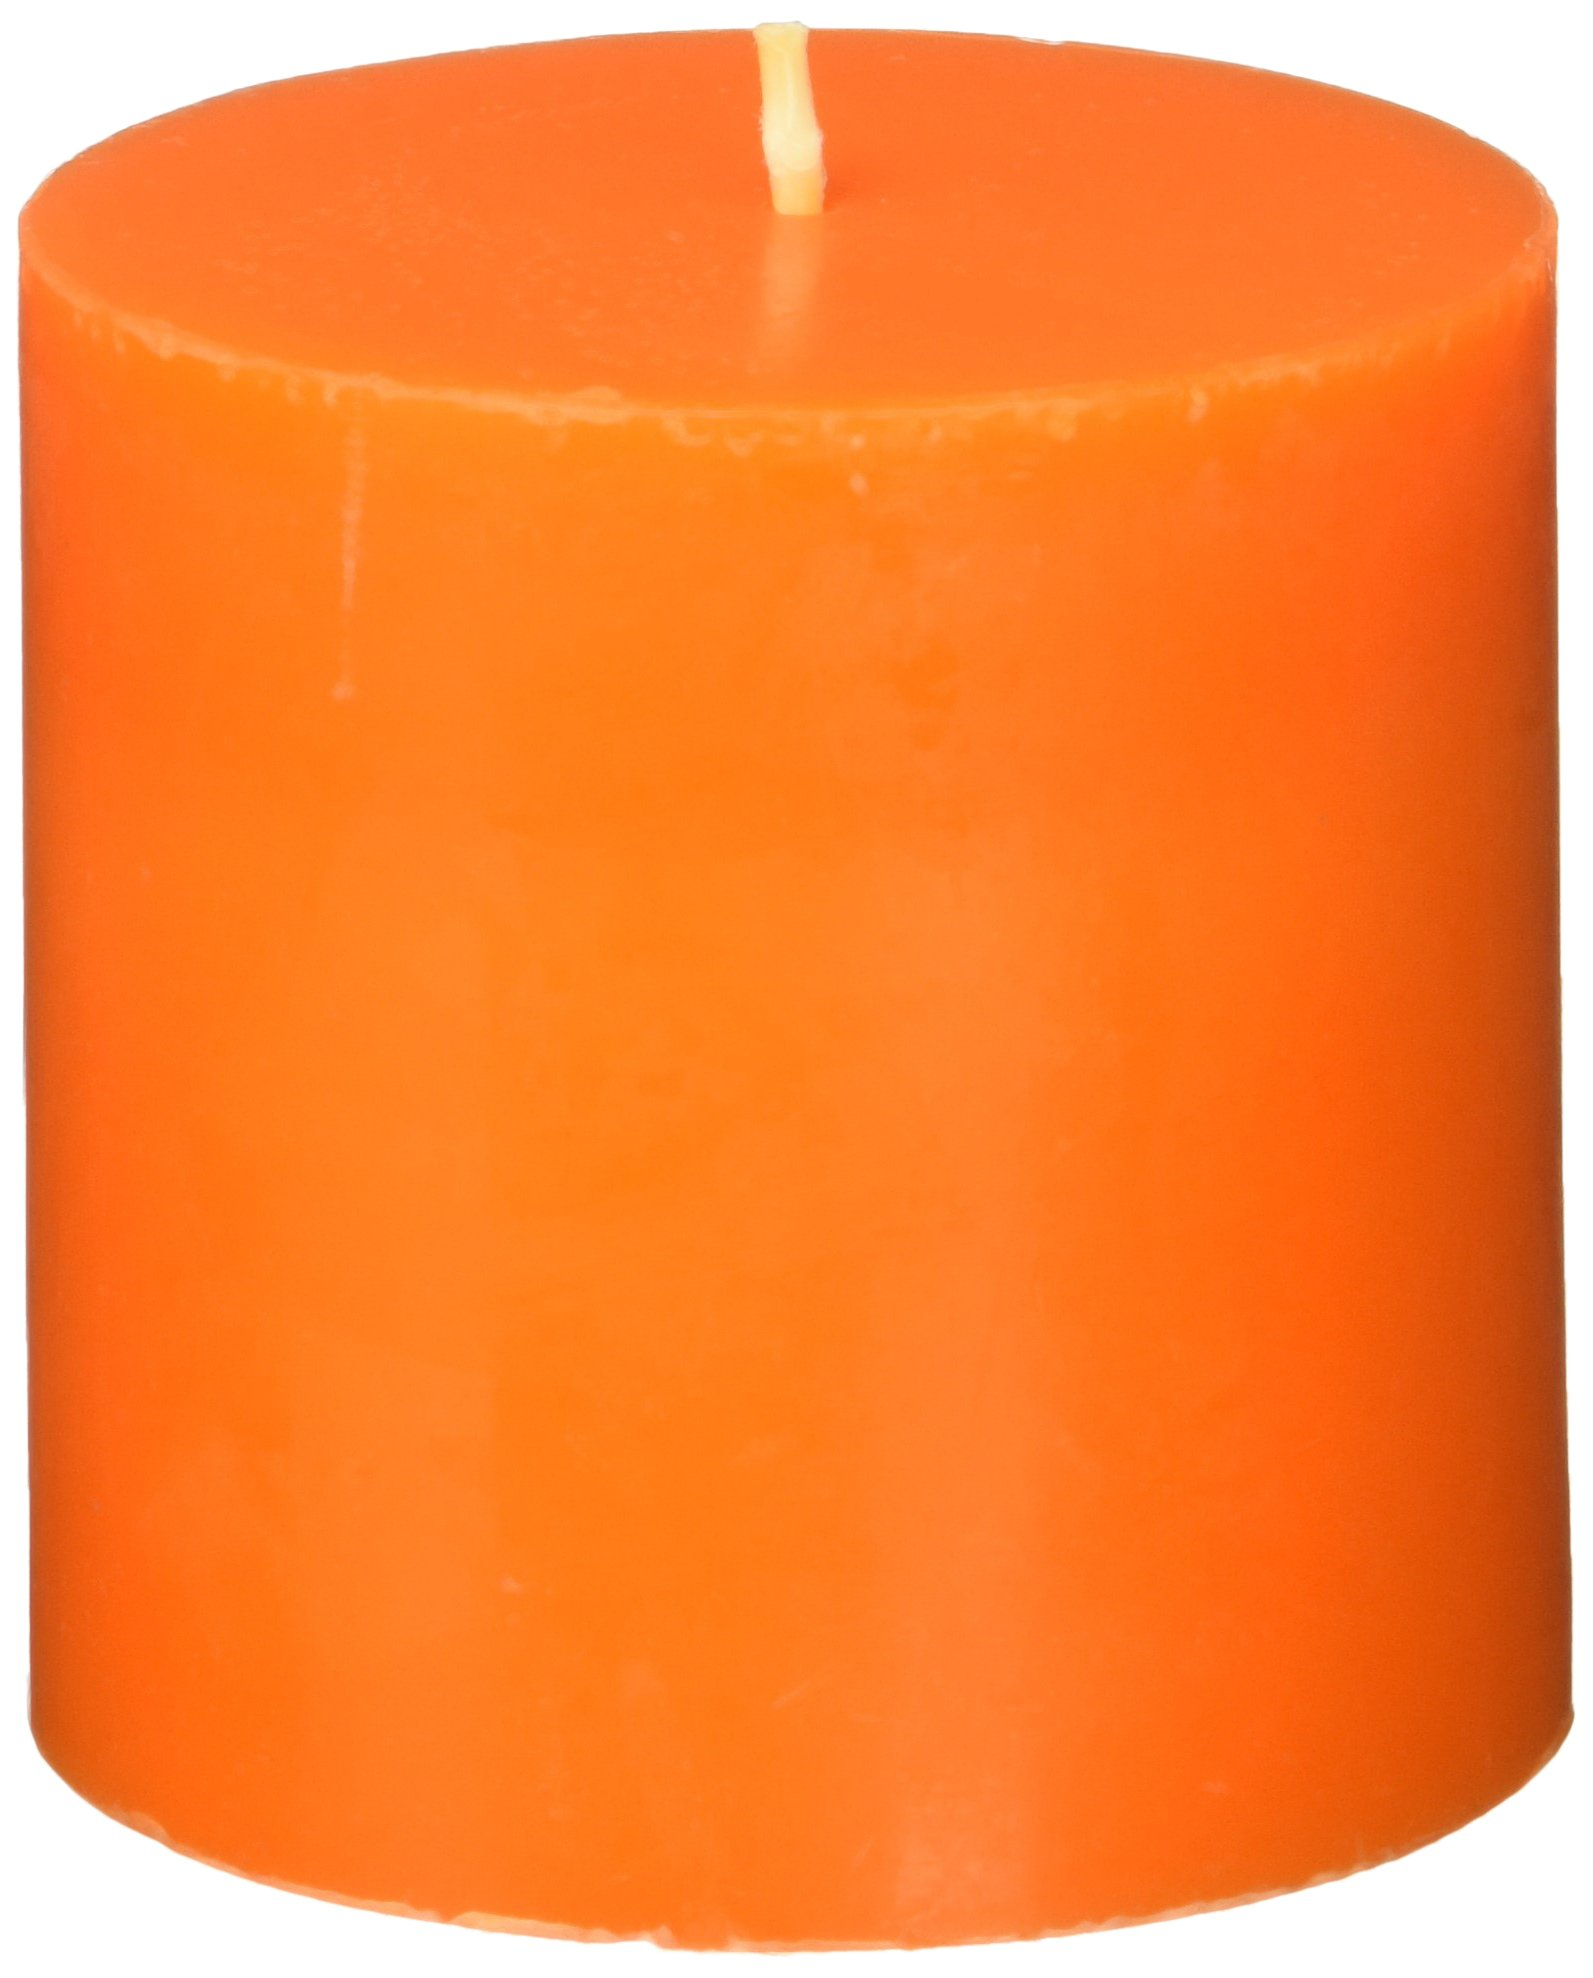 Zest Candle Pillar Candle, 3 by 3-Inch, Orange